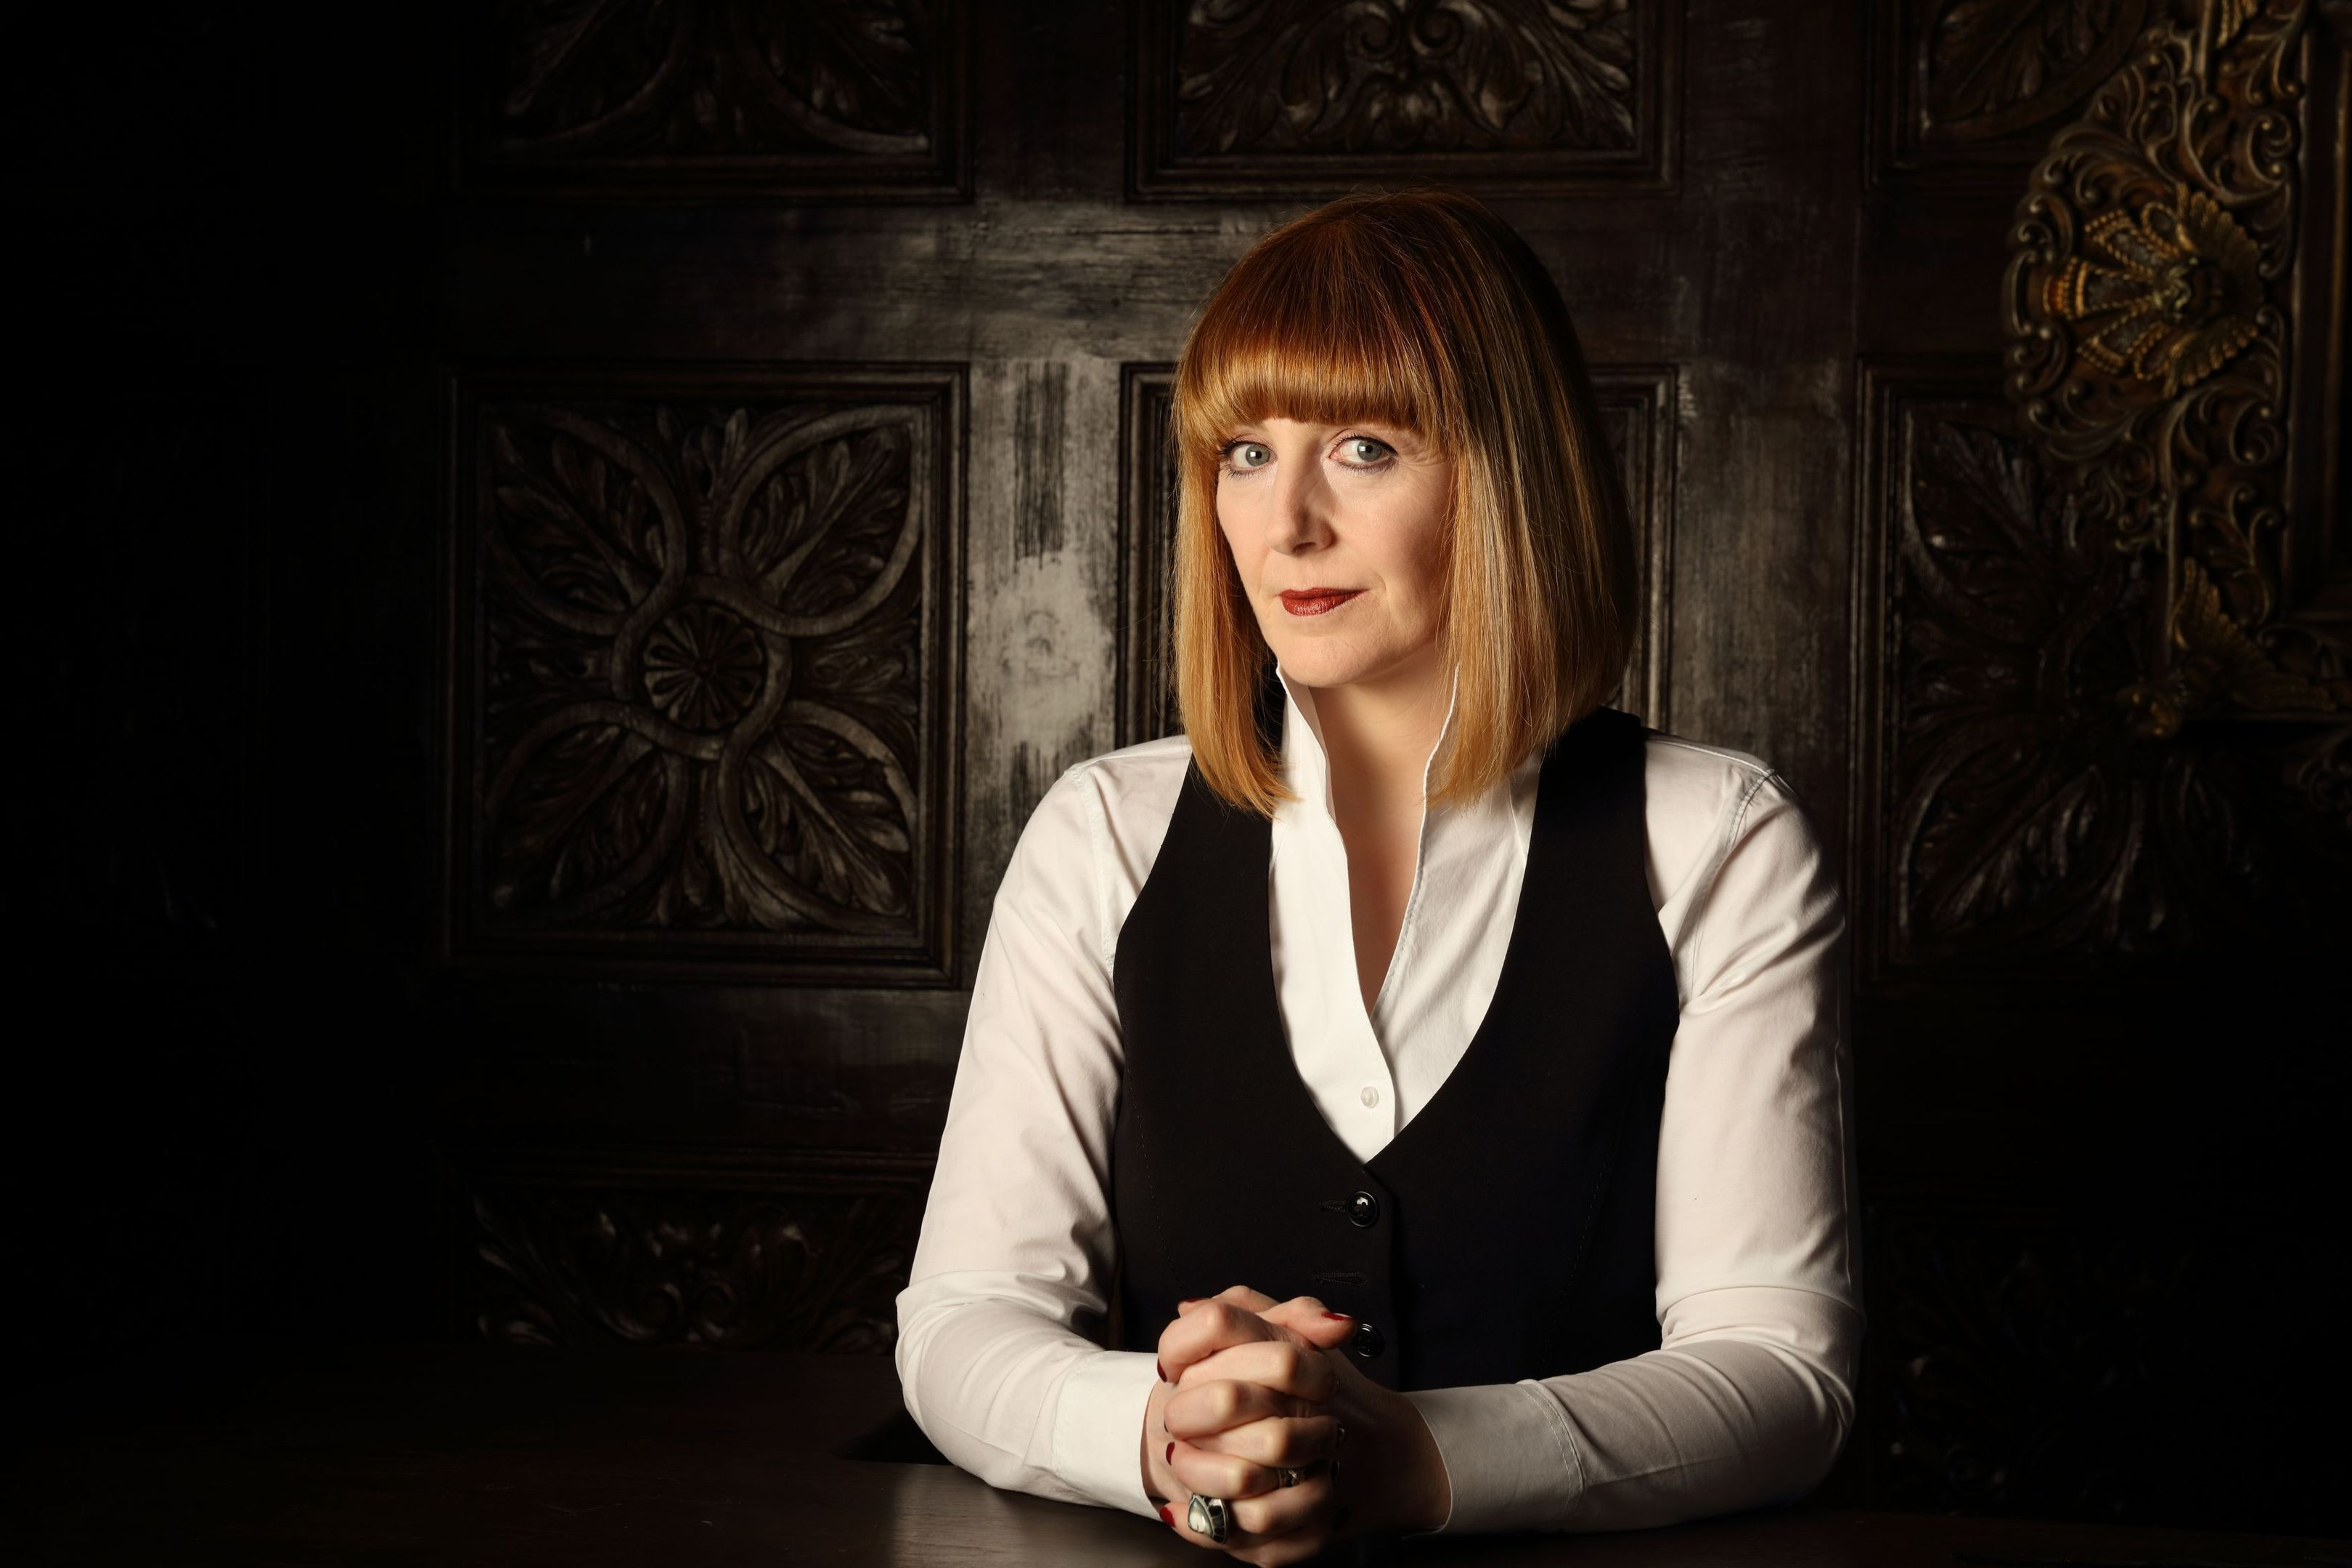 Yvette Fielding, the presenter of Most Haunted